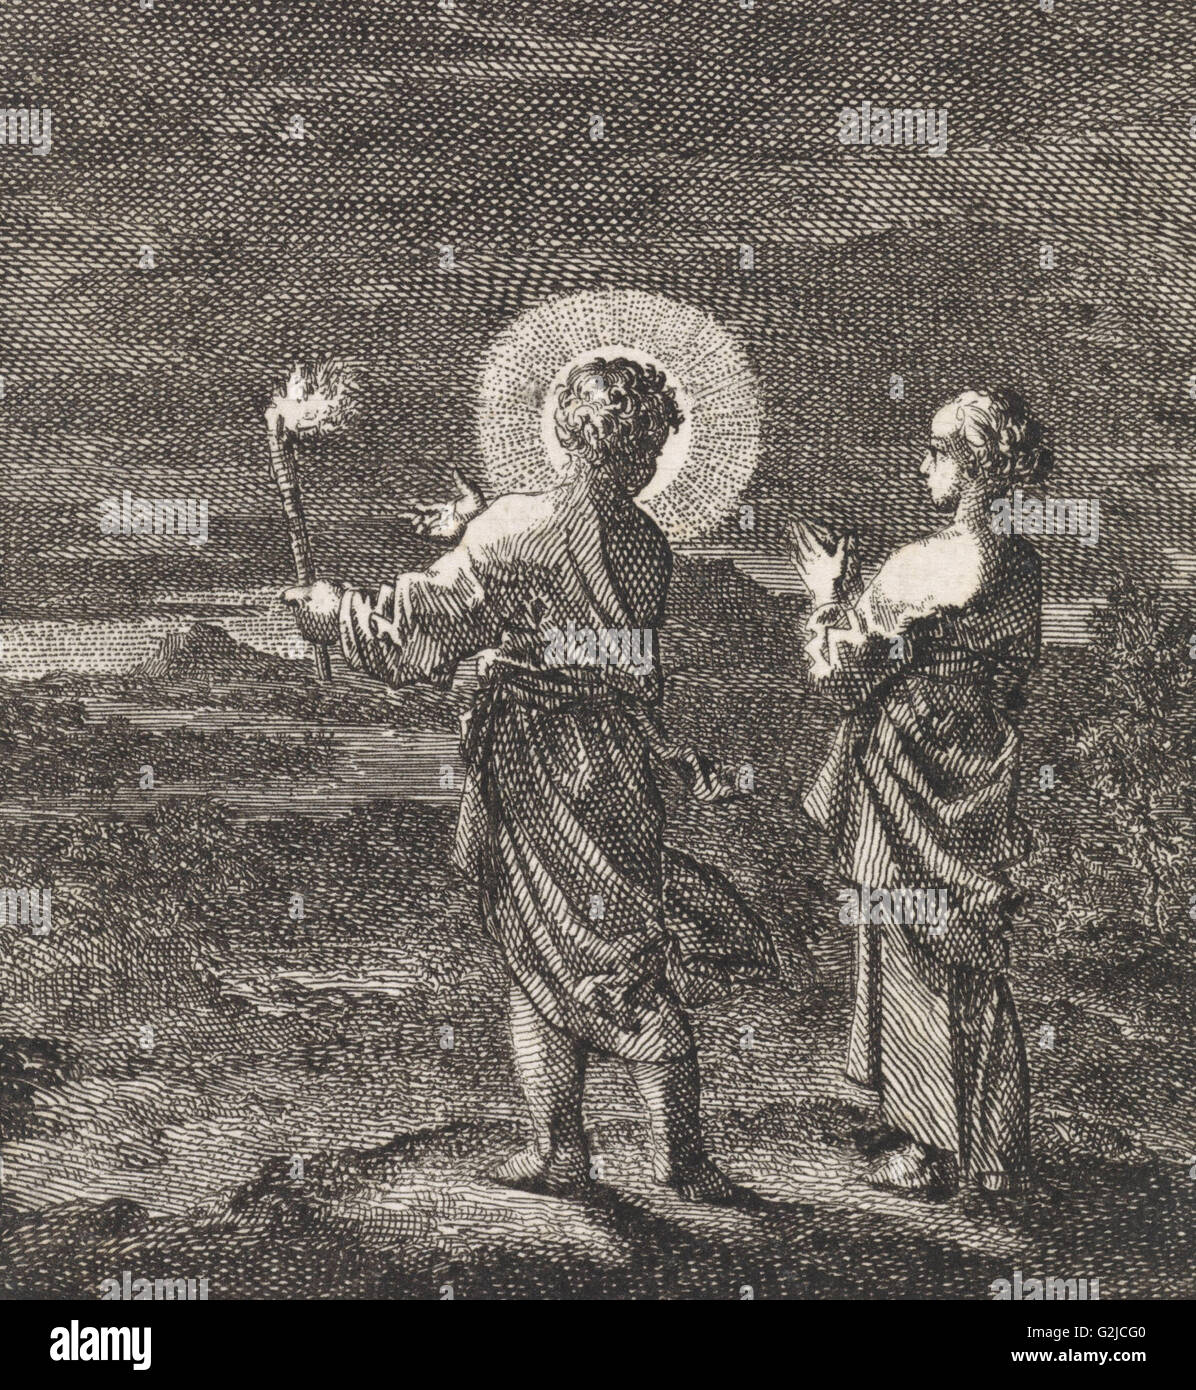 Christ illuminates the darkness with a torch for the personified soul, Jan Luyken, 1714 - Stock Image